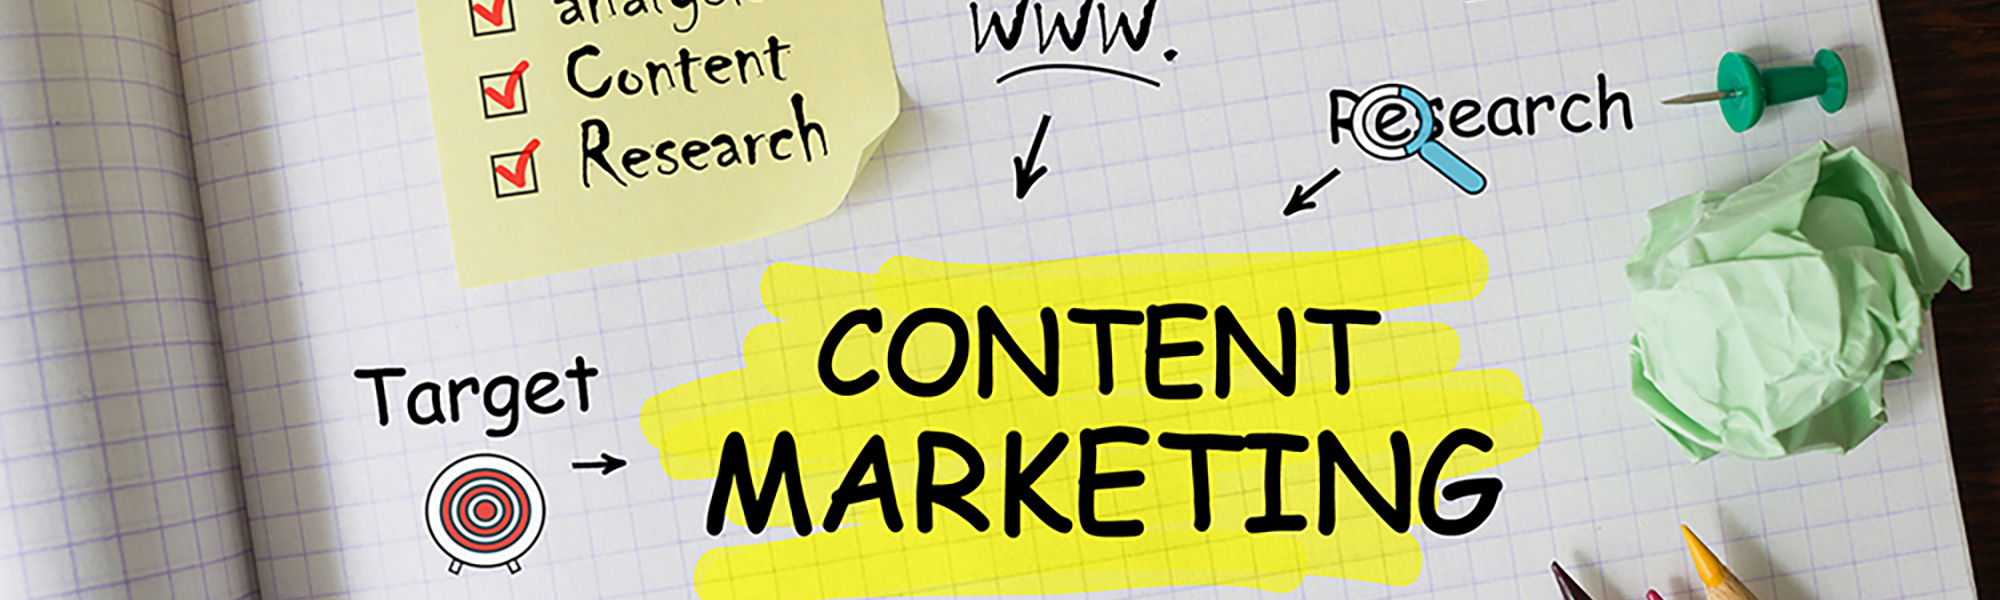 Content Management and Content Marketing